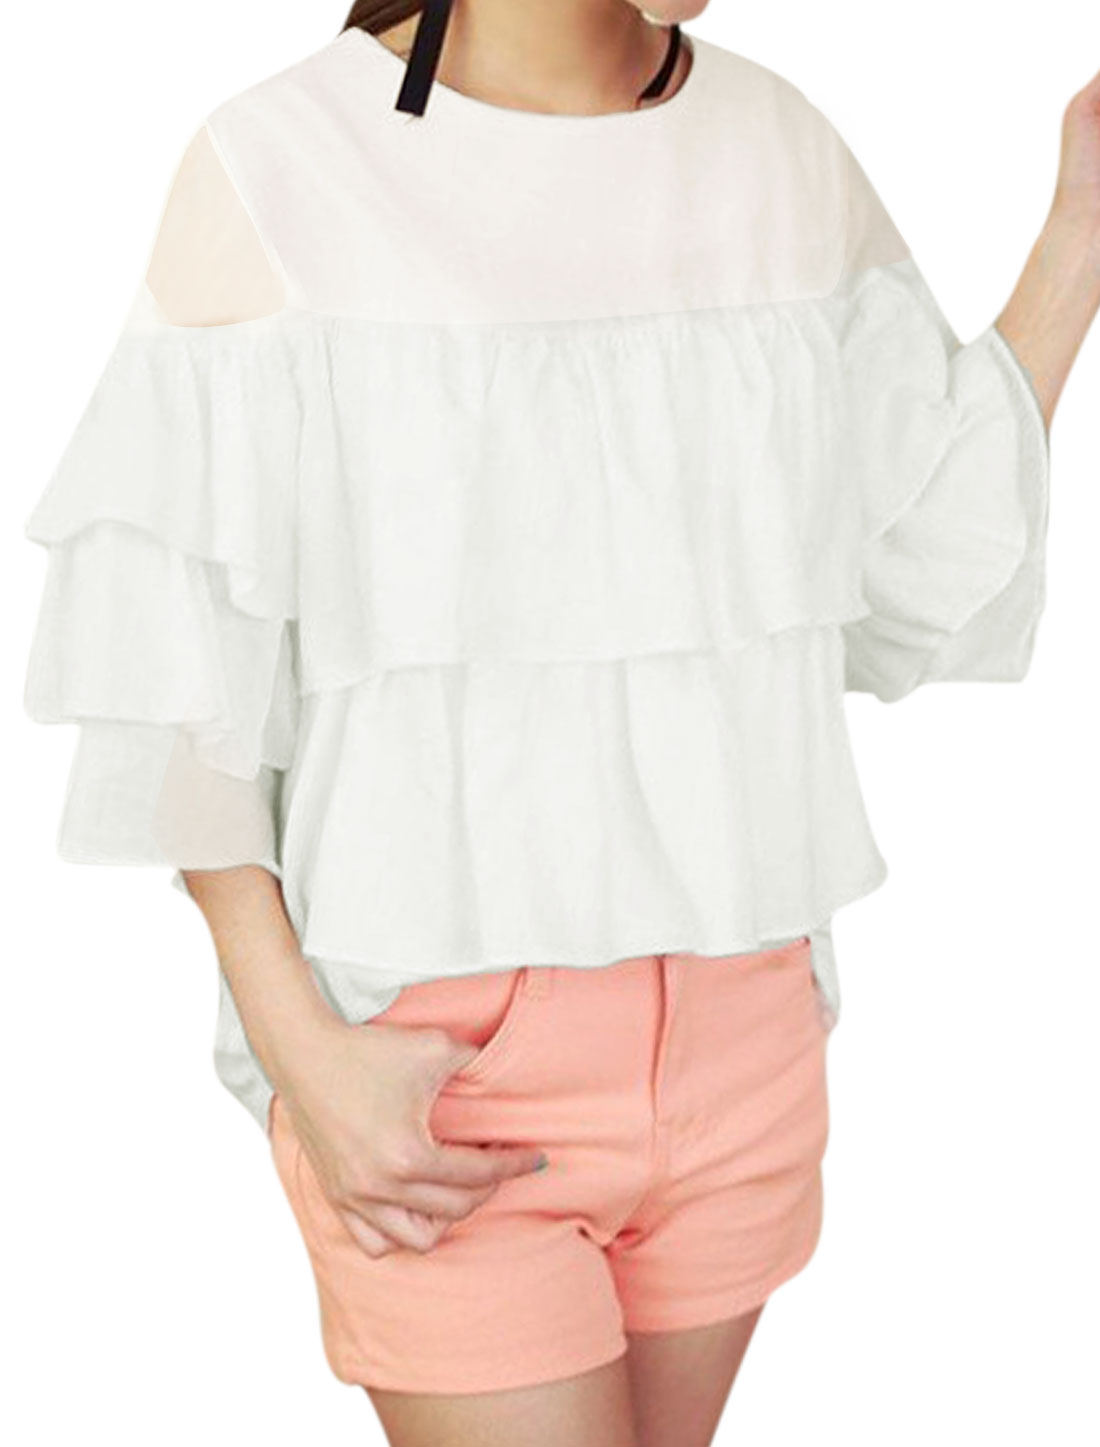 Lady Round Neck 3/4 Sleeve Layered Design Semi Sheer Top White XS